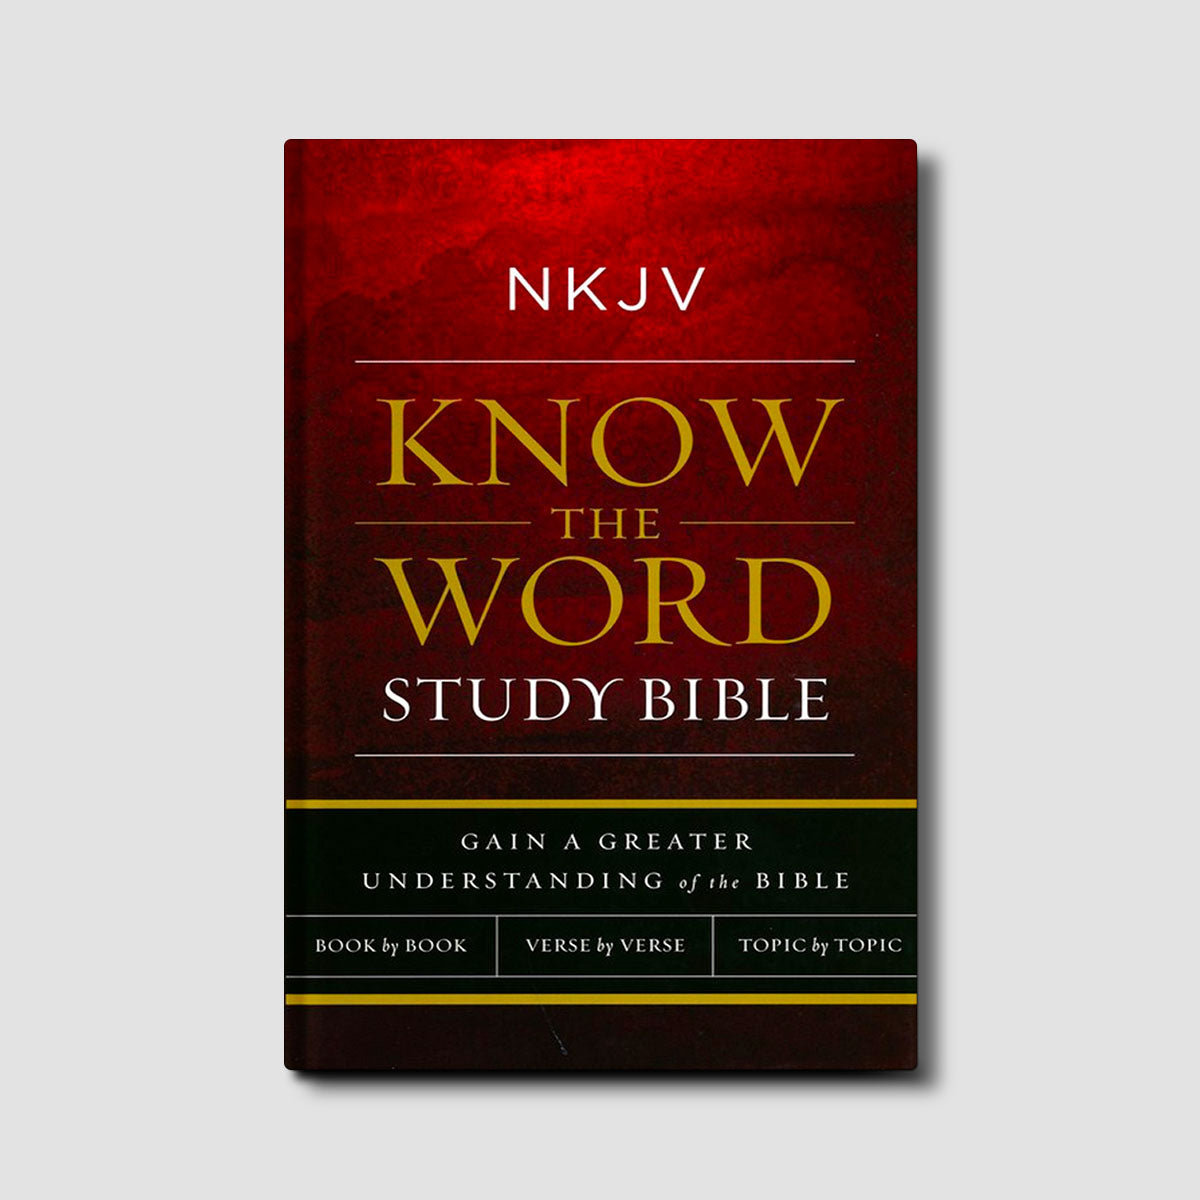 NKJV Know The Word Study Bible